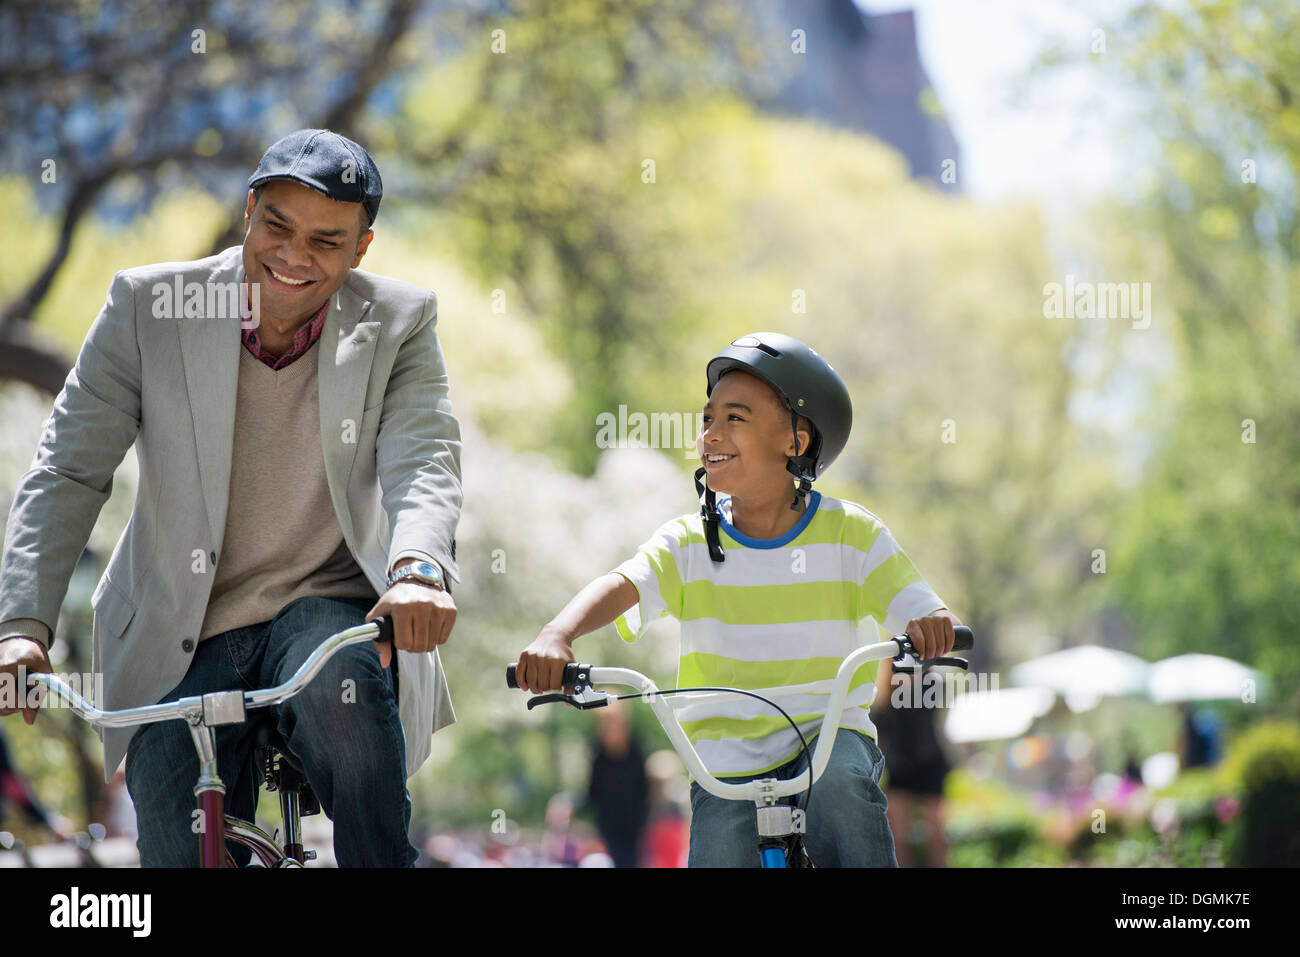 A family in the park on a sunny day. Father and son bicycling - Stock Image